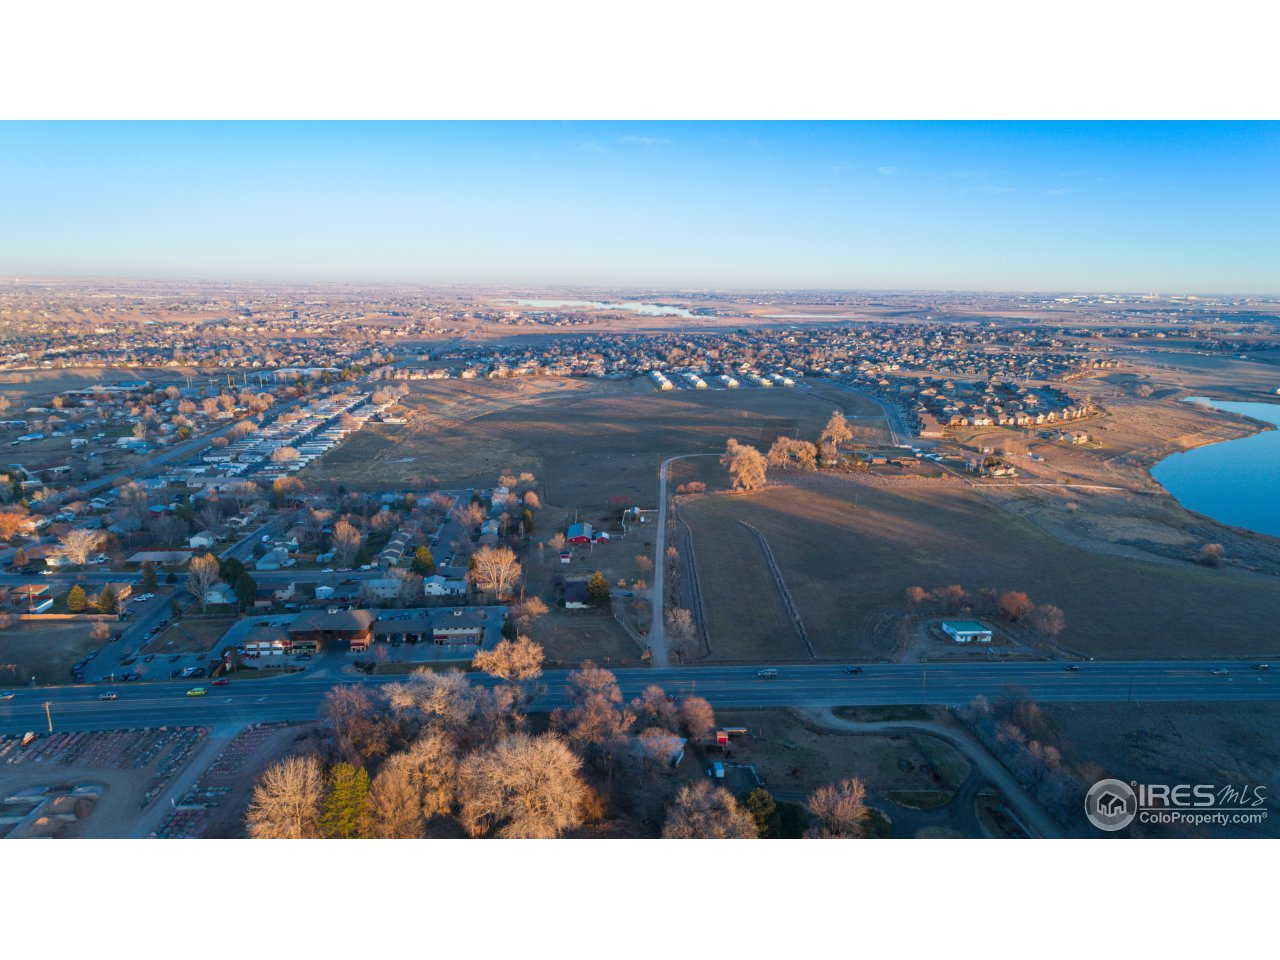 PRIME DEVELOPMENT OPPORTUNITY! !! This 33.5 acre parcel is located in south Fort Collins, and minutes to Loveland!  Developers, builders, and investors look at this tract zoned multi family-mixed use,up to 9 units/ac also allows for wide range/mixed housing choices and variety of commercial/retail uses.  Rental home on property with barns and garage.  Call agent for additional information.